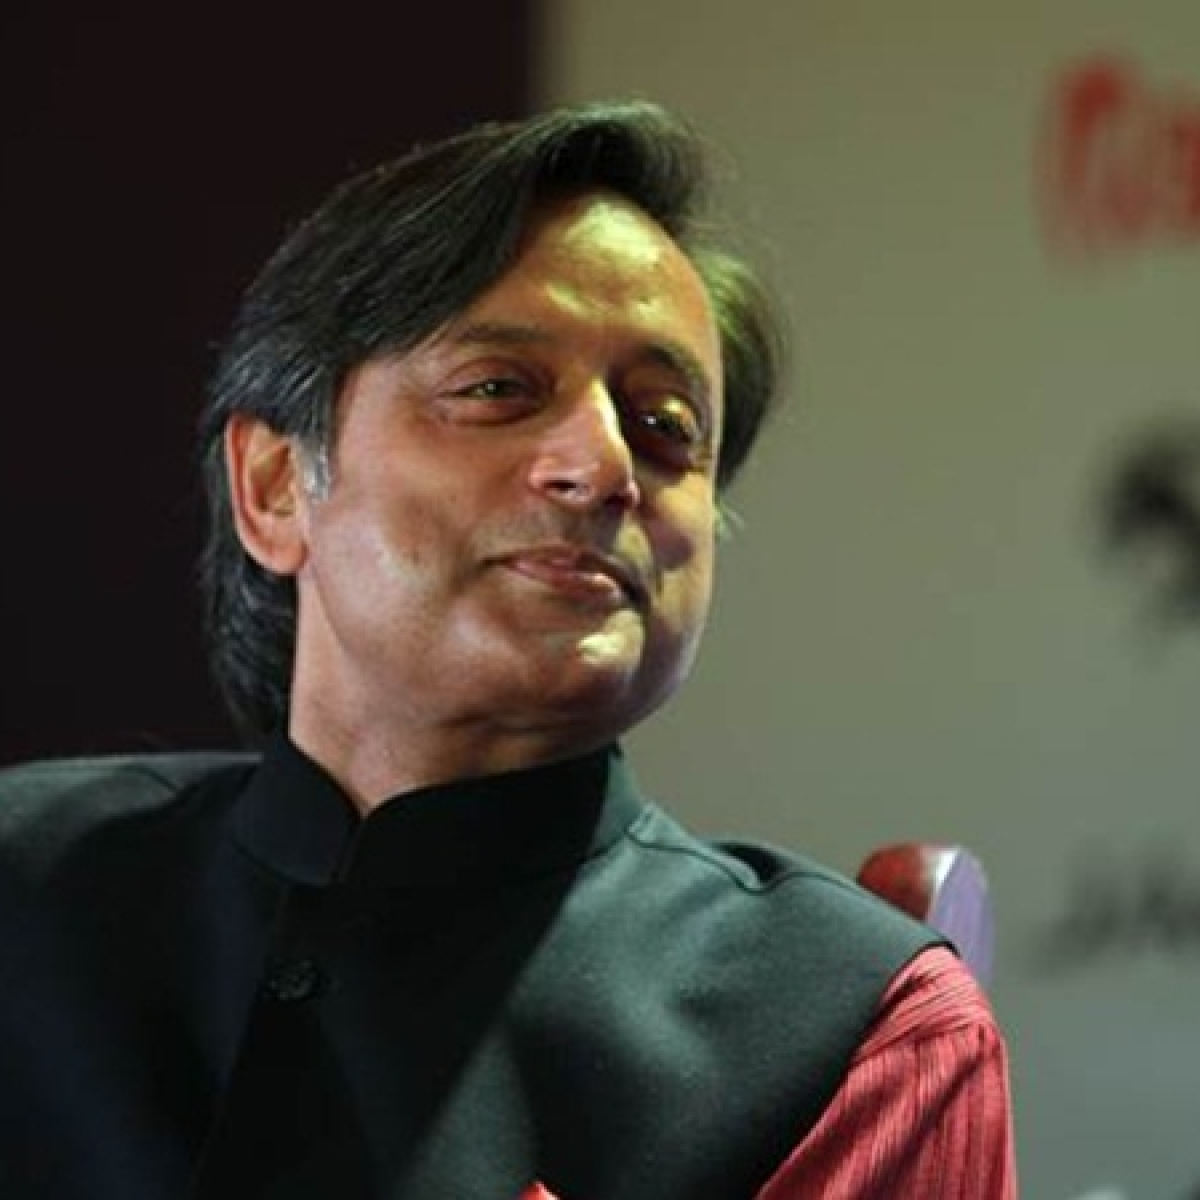 Shashi Tharoor calls PM Modi's speech 'mellifluous', what does it mean exactly?